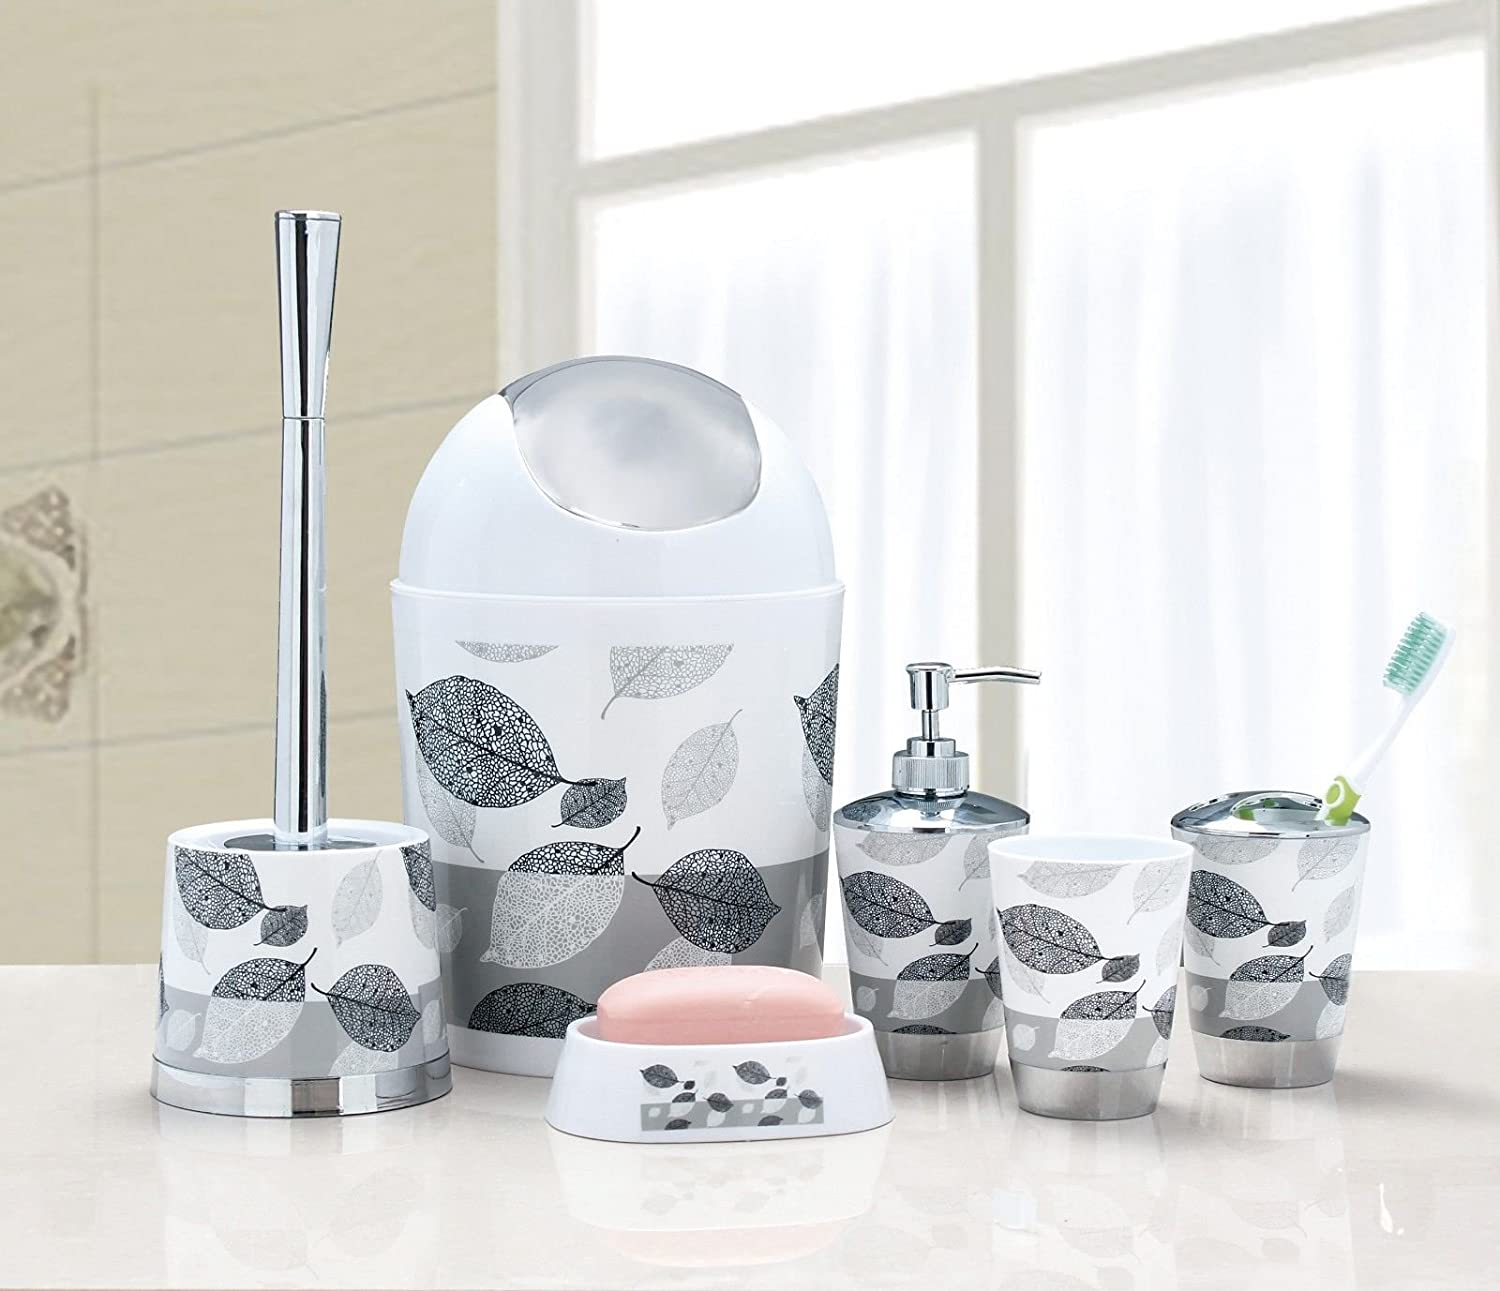 6pcs//Set Bathroom Accessory Bin Soap Dish Dispenser Tumbler Toothbrush Holder